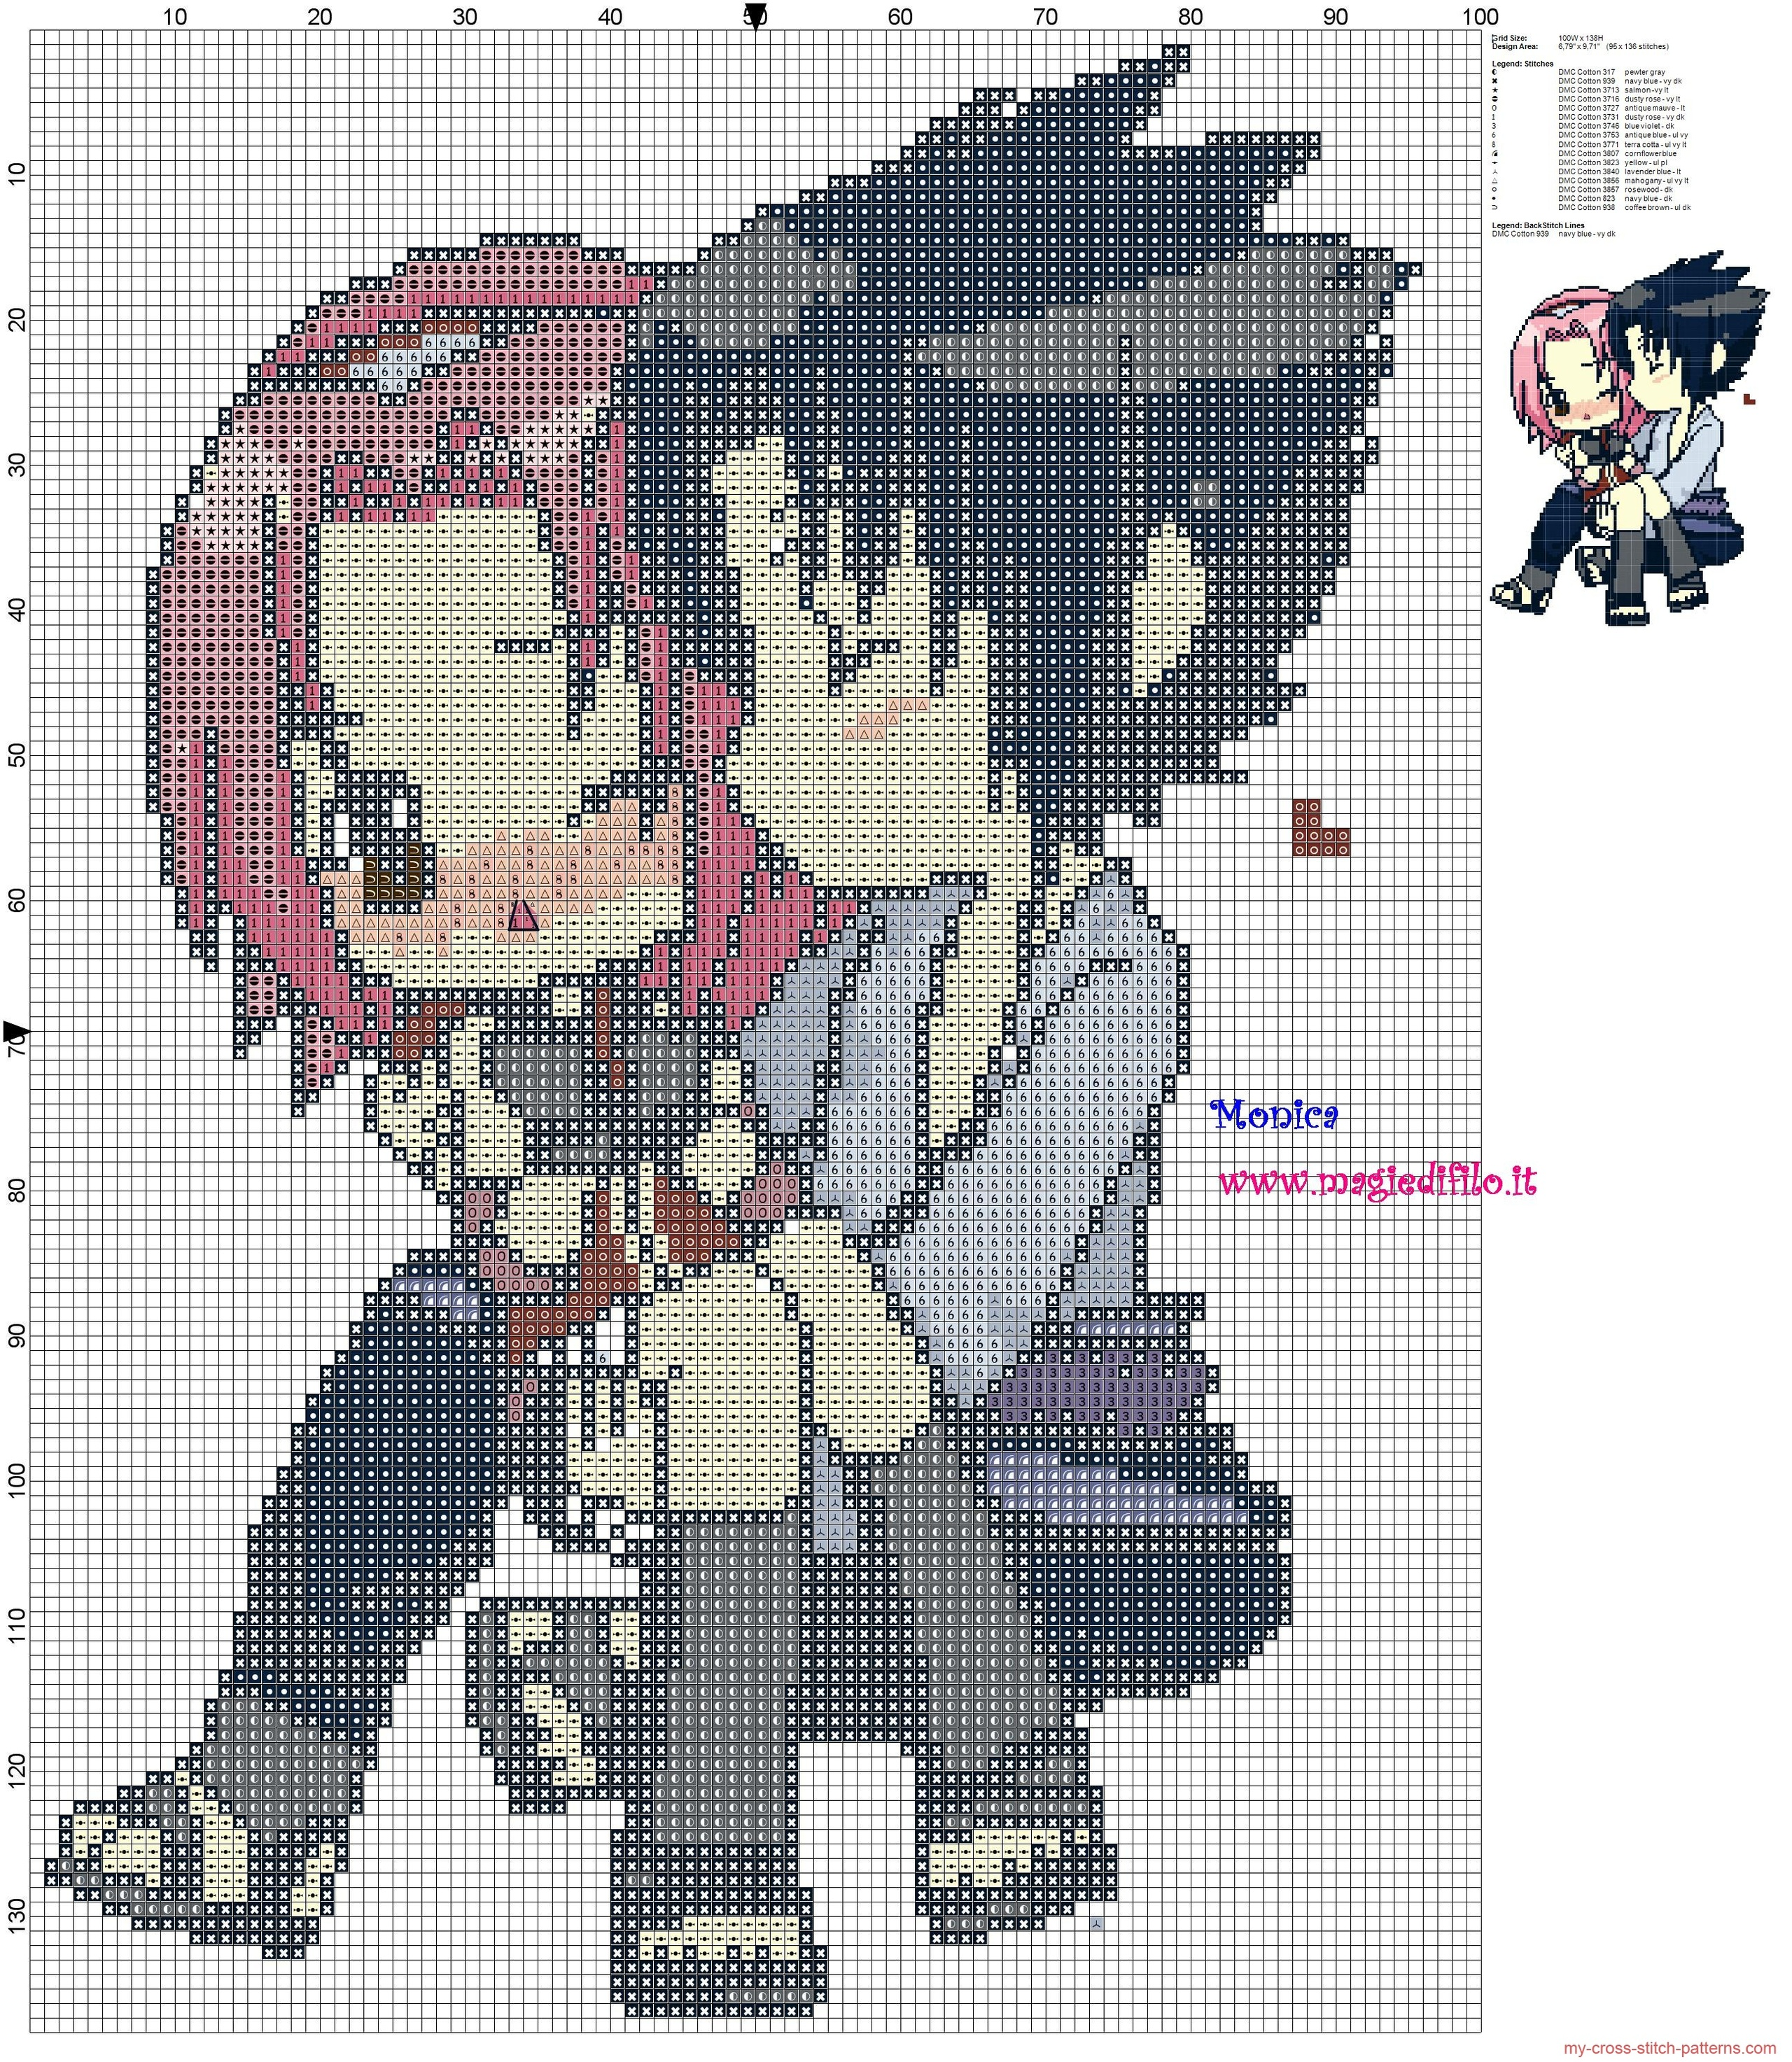 sasuke_e_sakura_naruto_cross_stitch_pattern